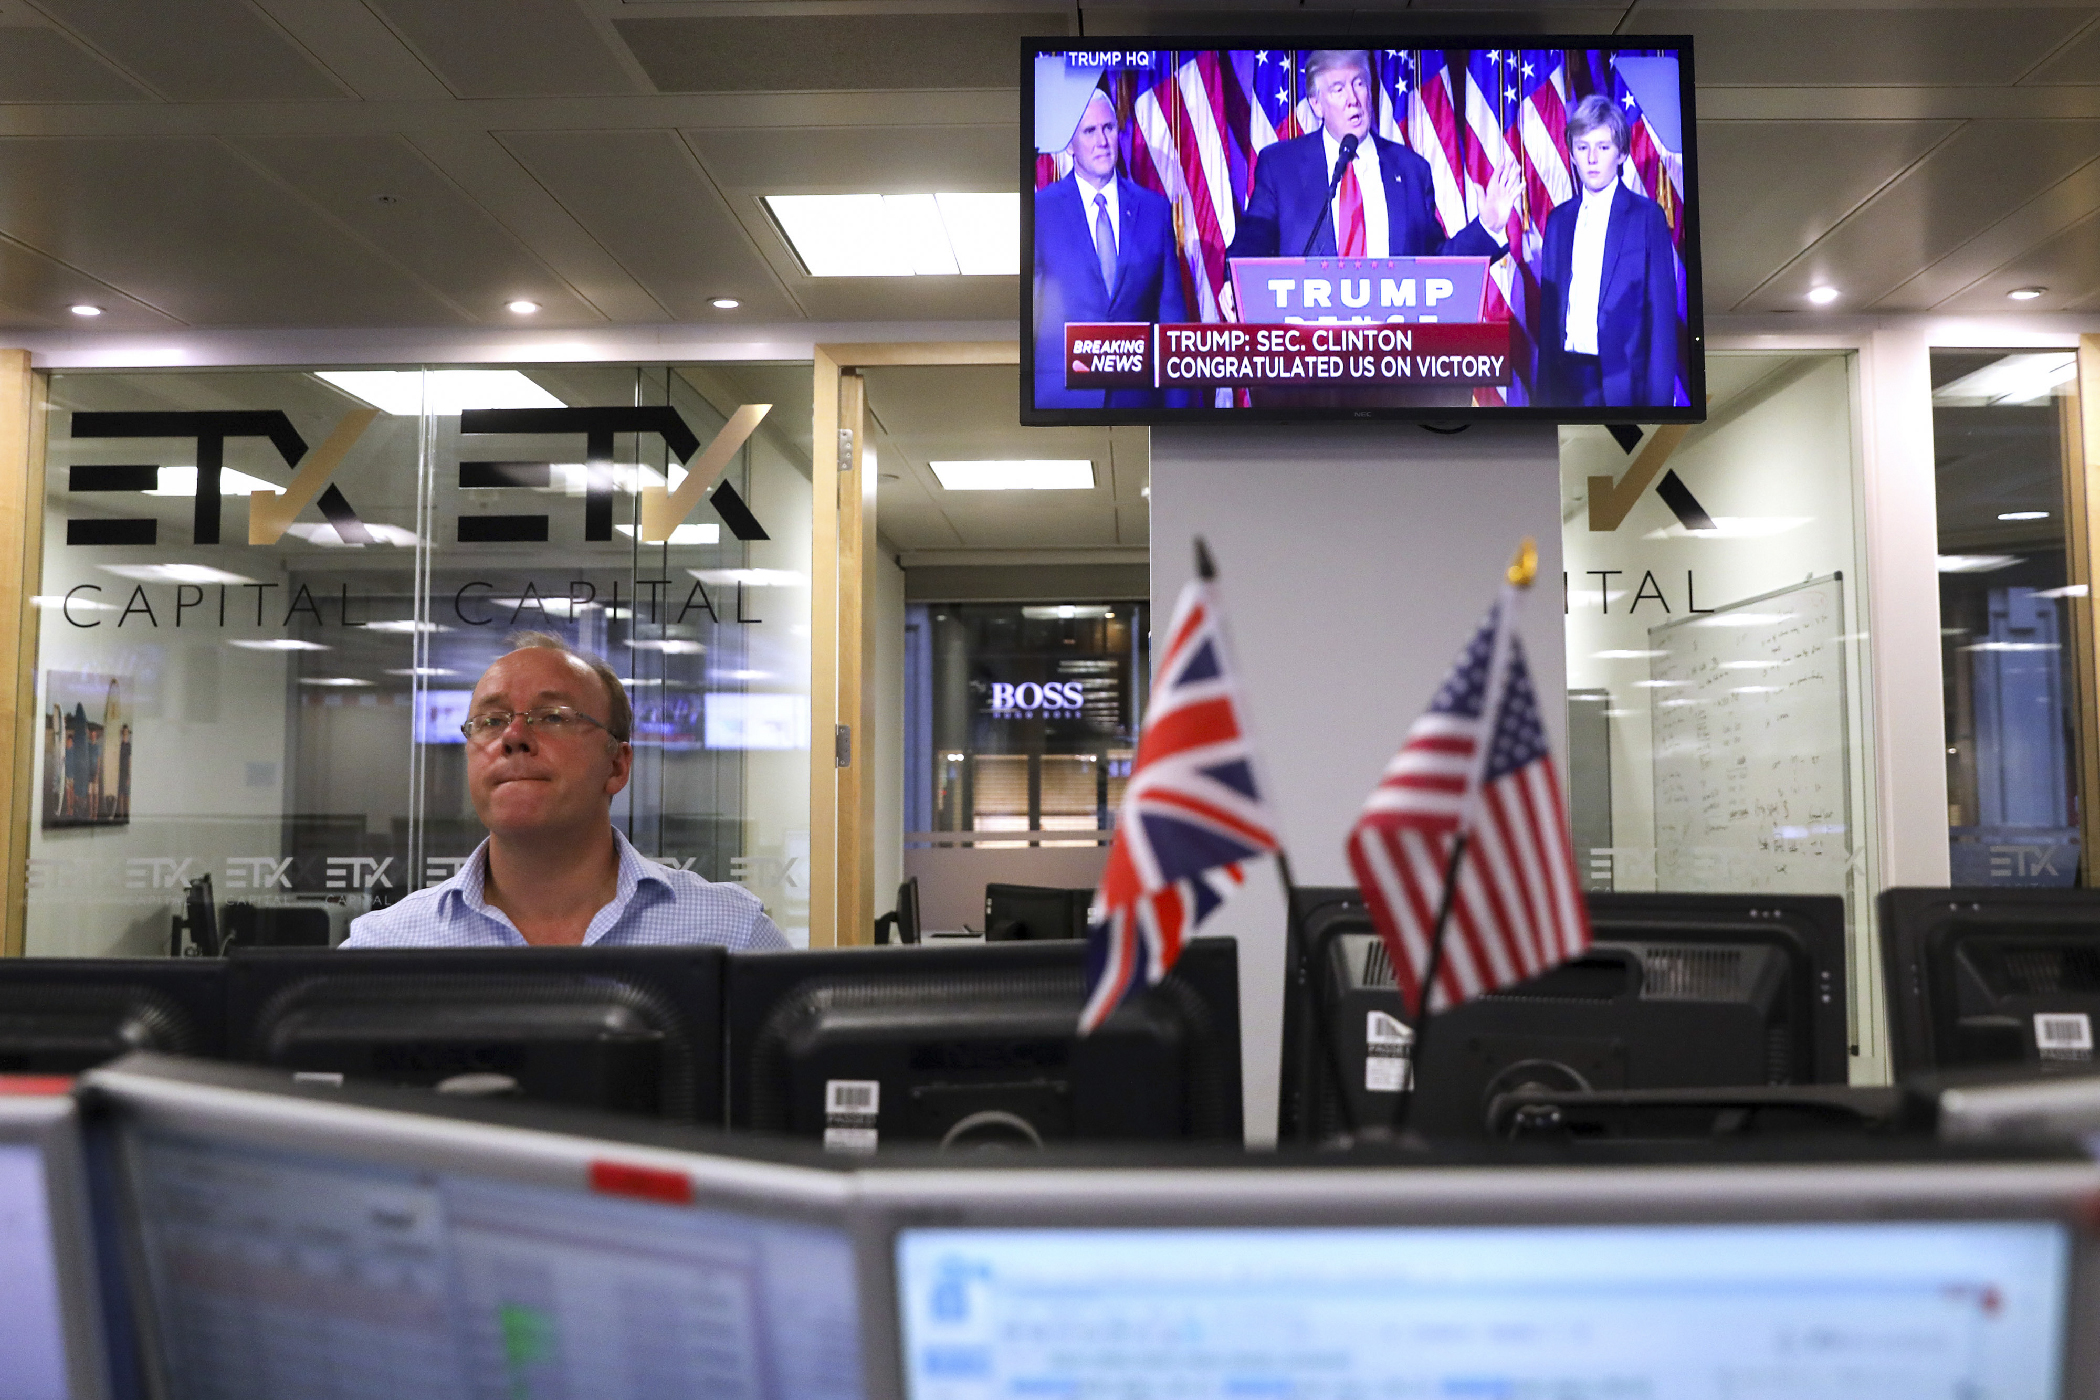 Traders on the floor at ETX Capital in London watched as Trump was elected. The UK markets suffered huge losses in June, after their own surprise Brexit referendum results sent stocks into a tailspin.